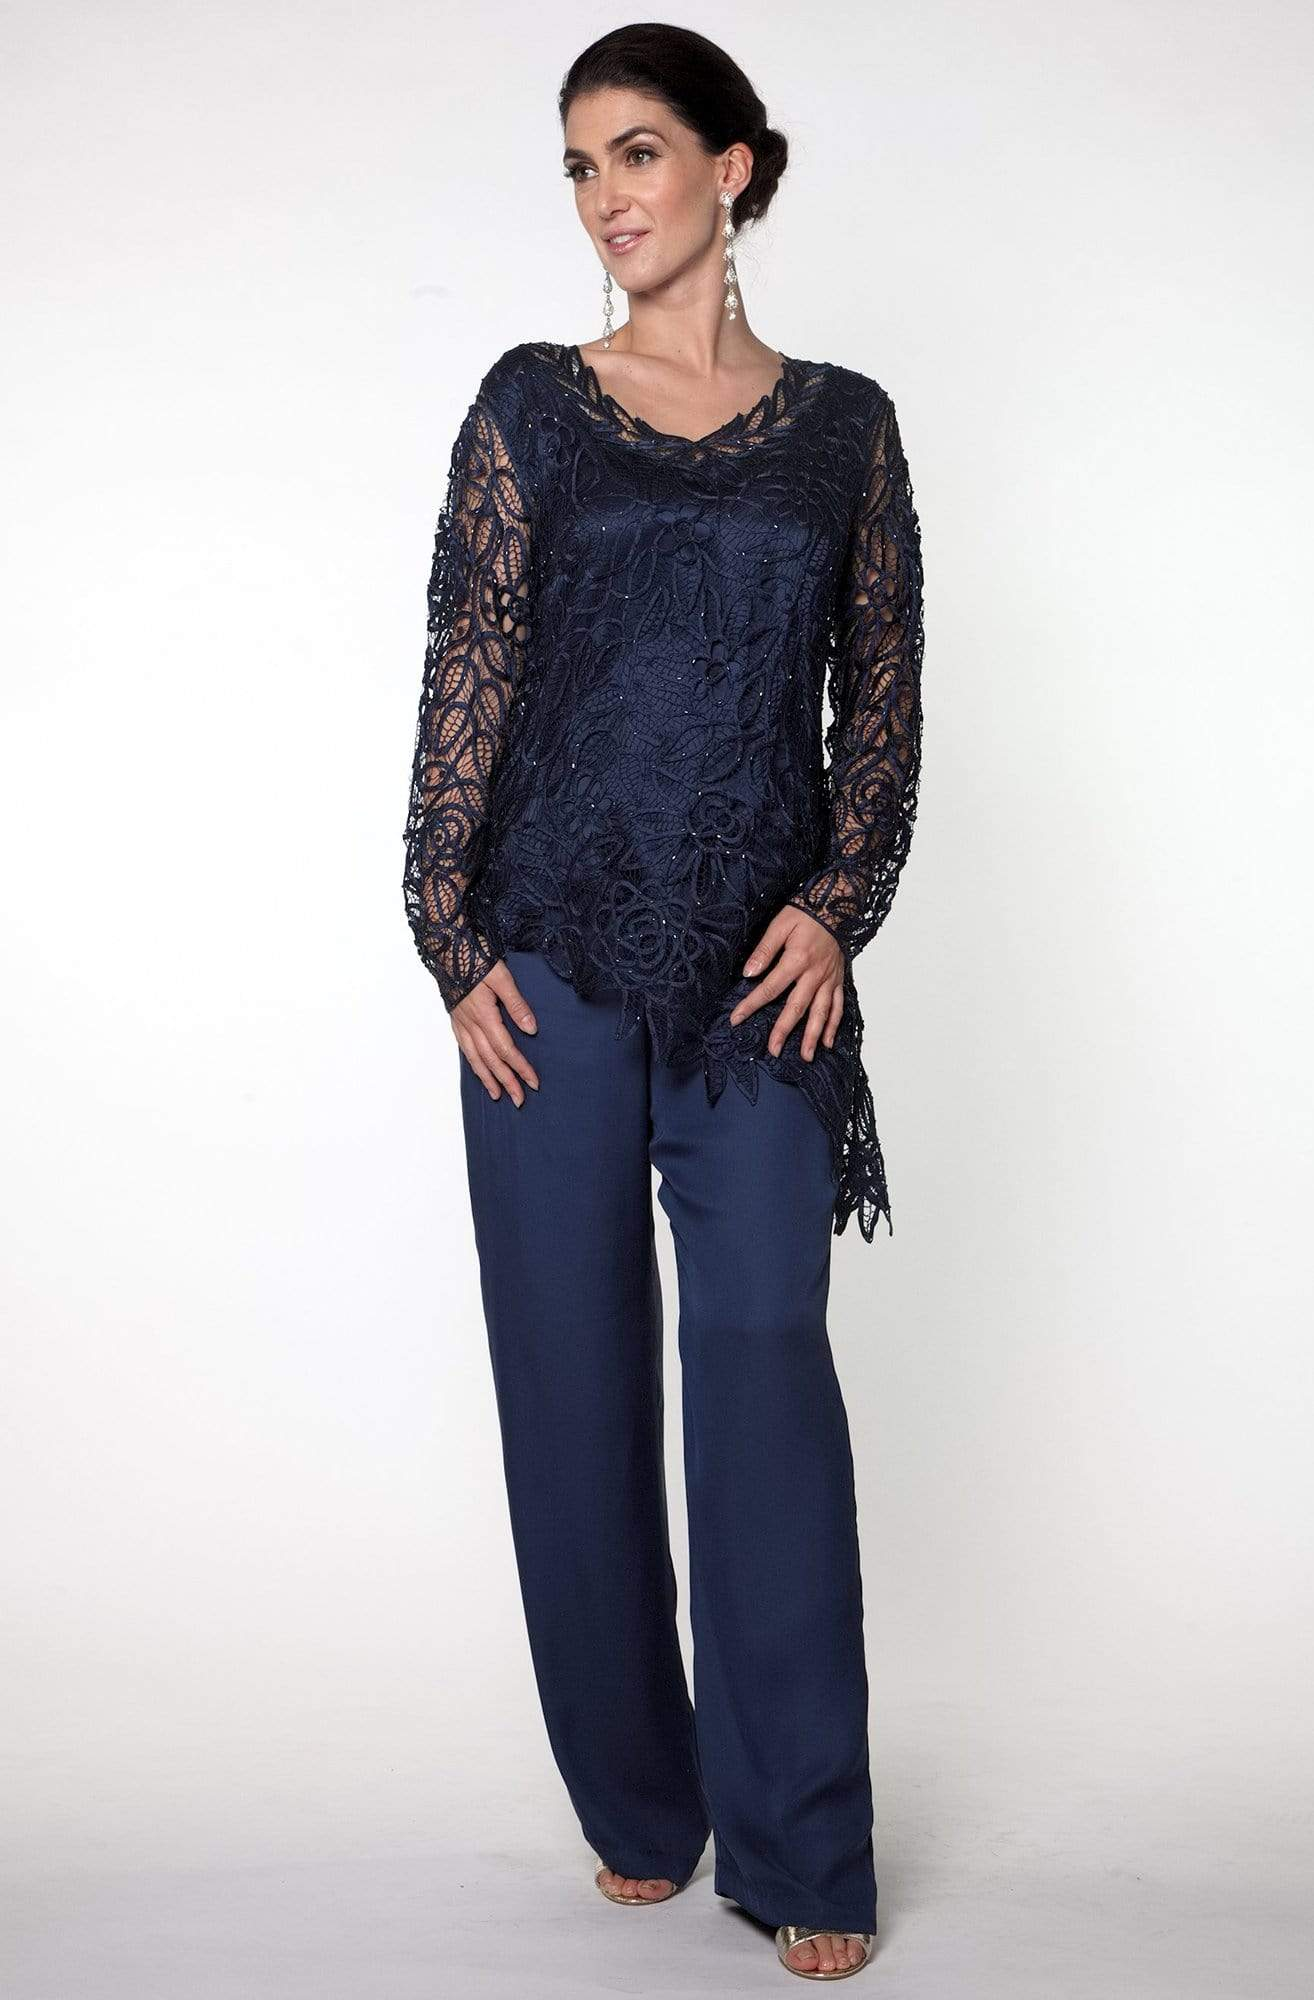 Soulmates - C805803 Asymmetrical Silk Lace Tunic Pants Set Mother of the Bride Dresses